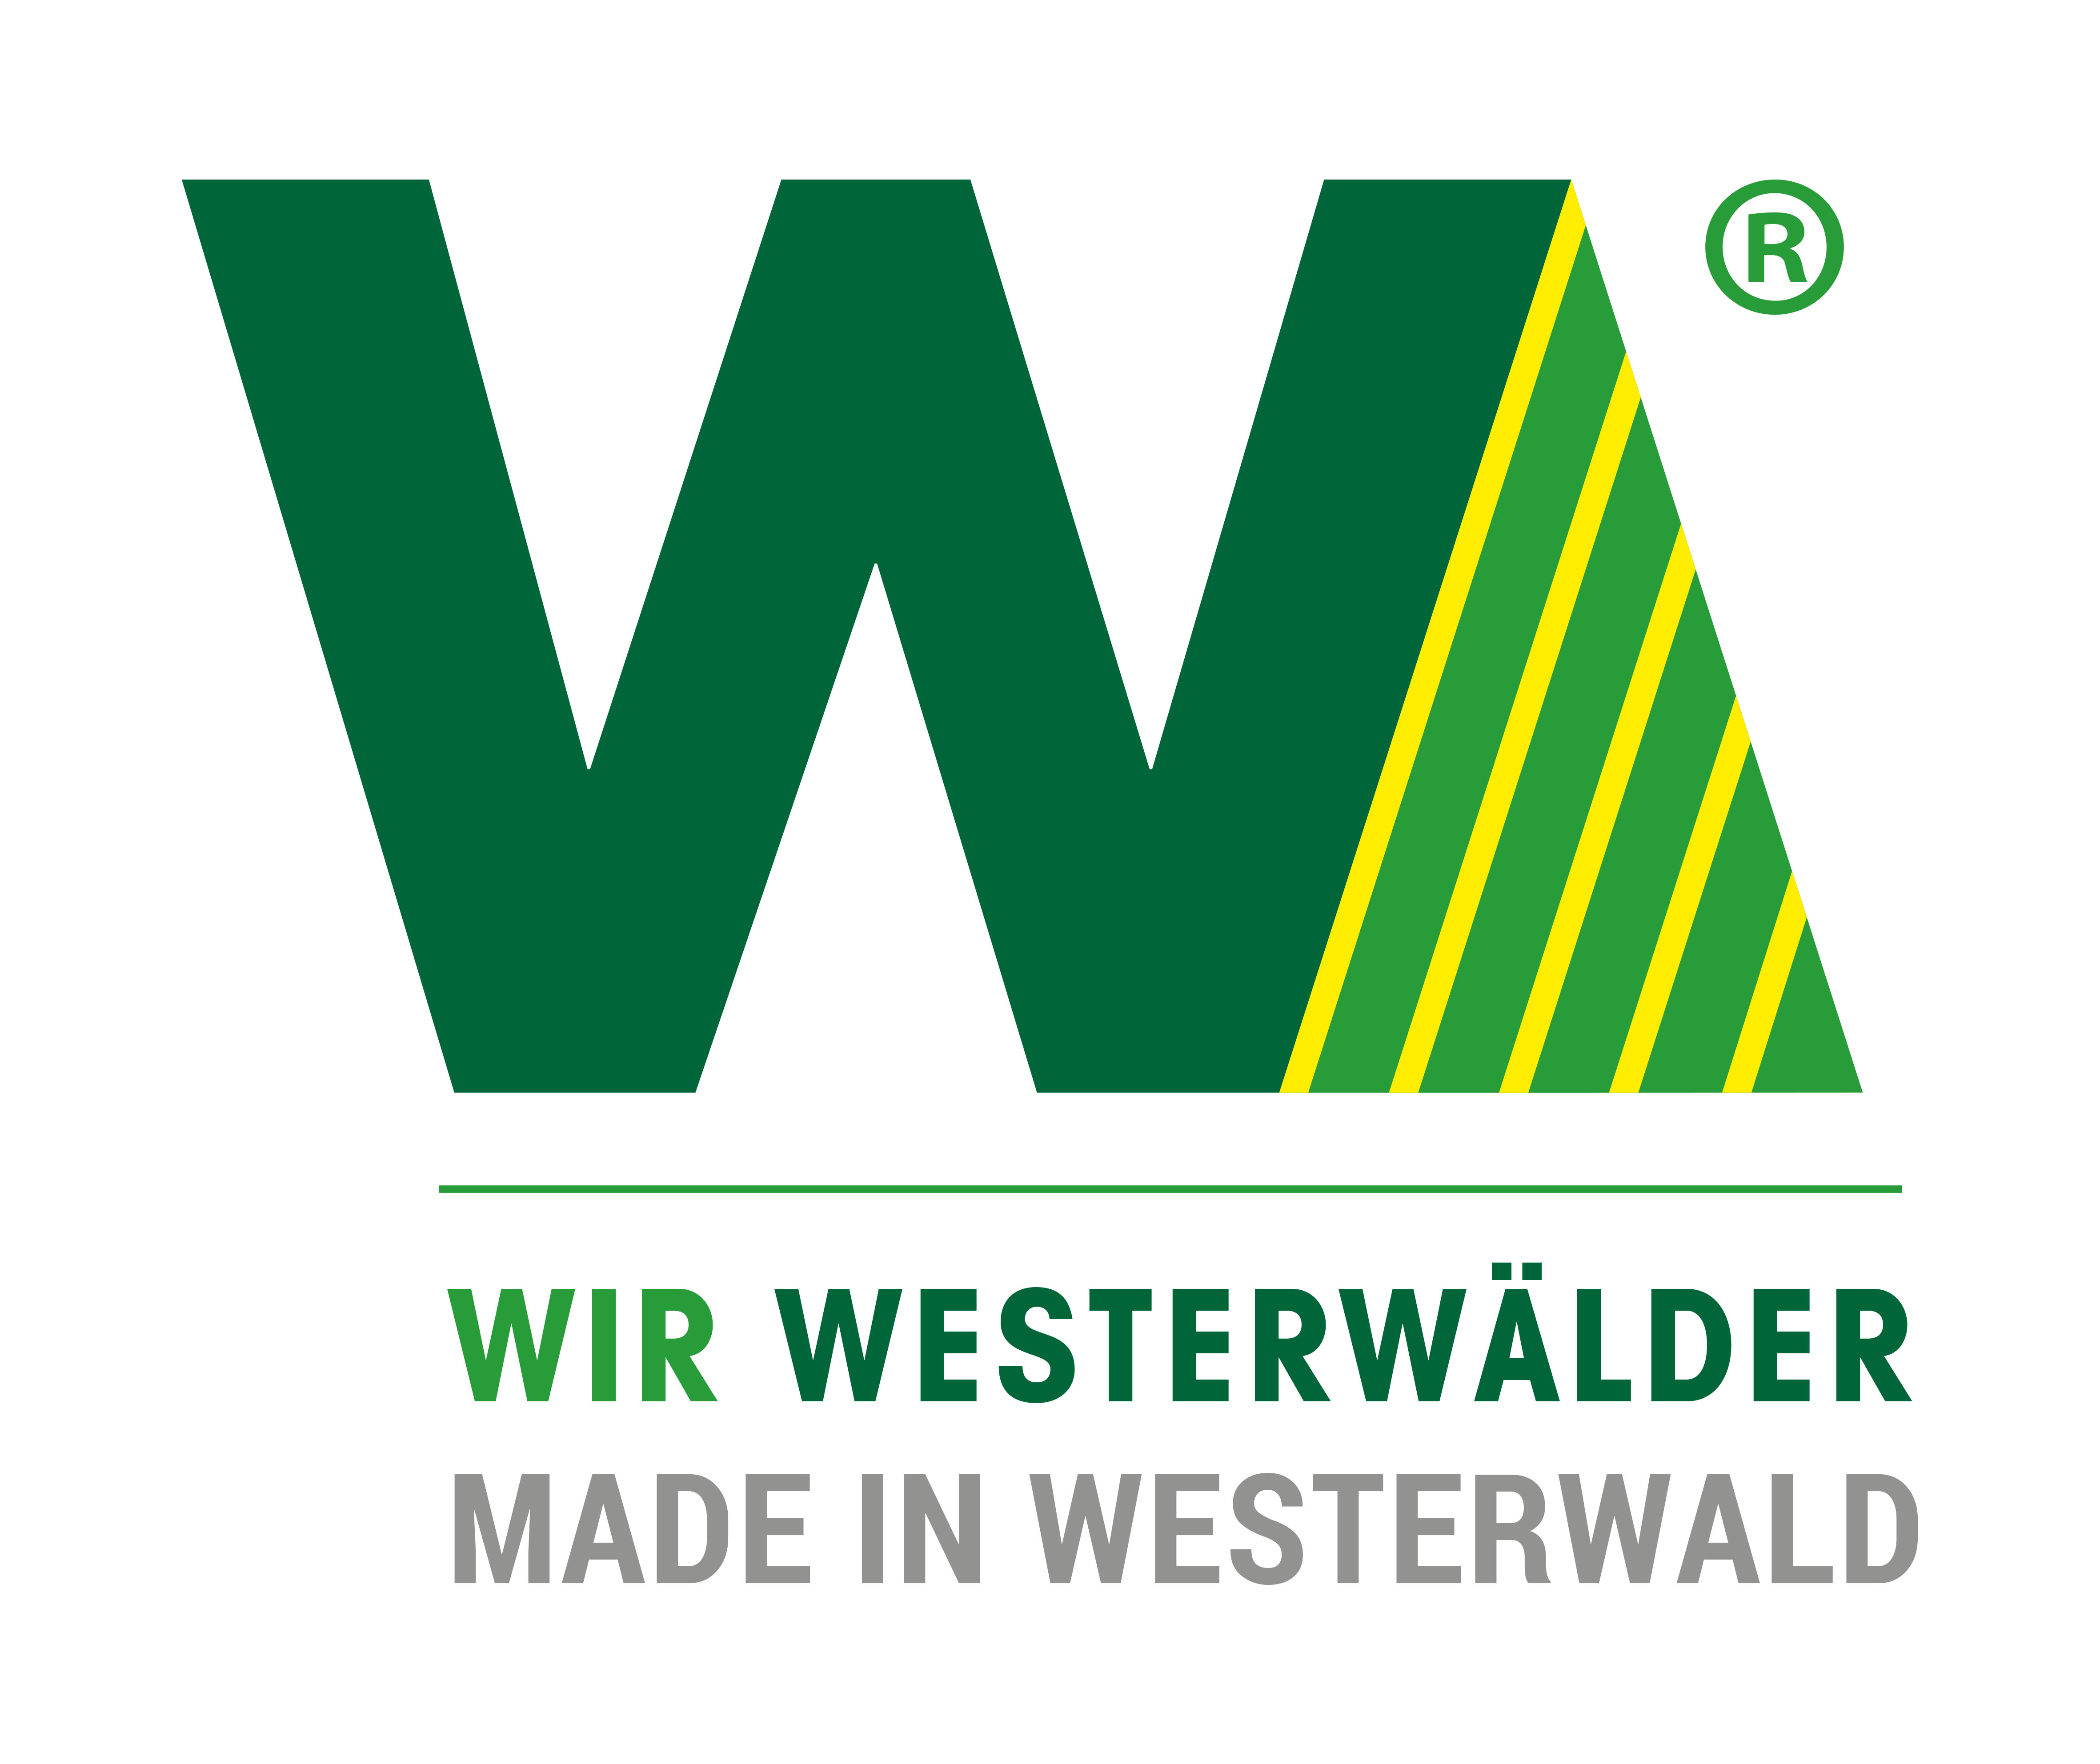 LOGO Made in Westerwald